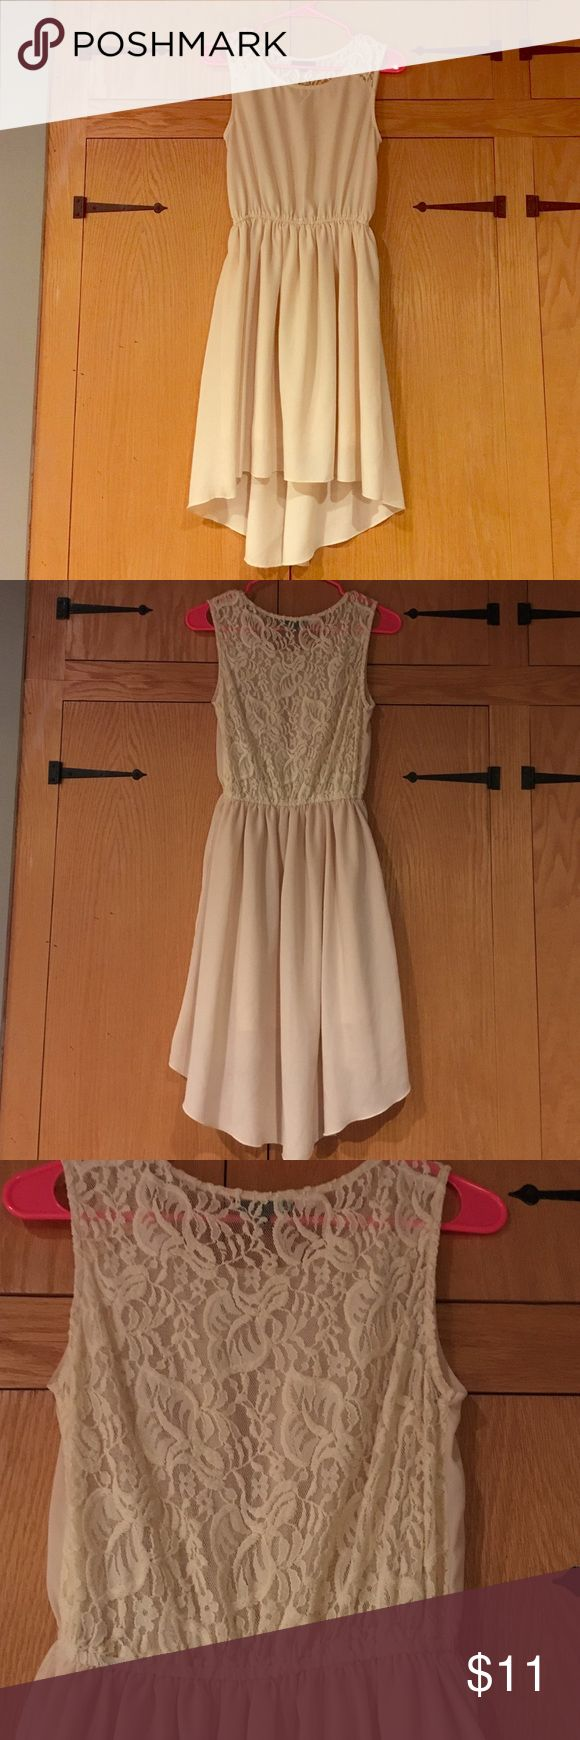 Cream Colored Dress with Lace Back Cream colored high-low dress with a lace back. Brand is Pripe. Size small Pripe Dresses High Low